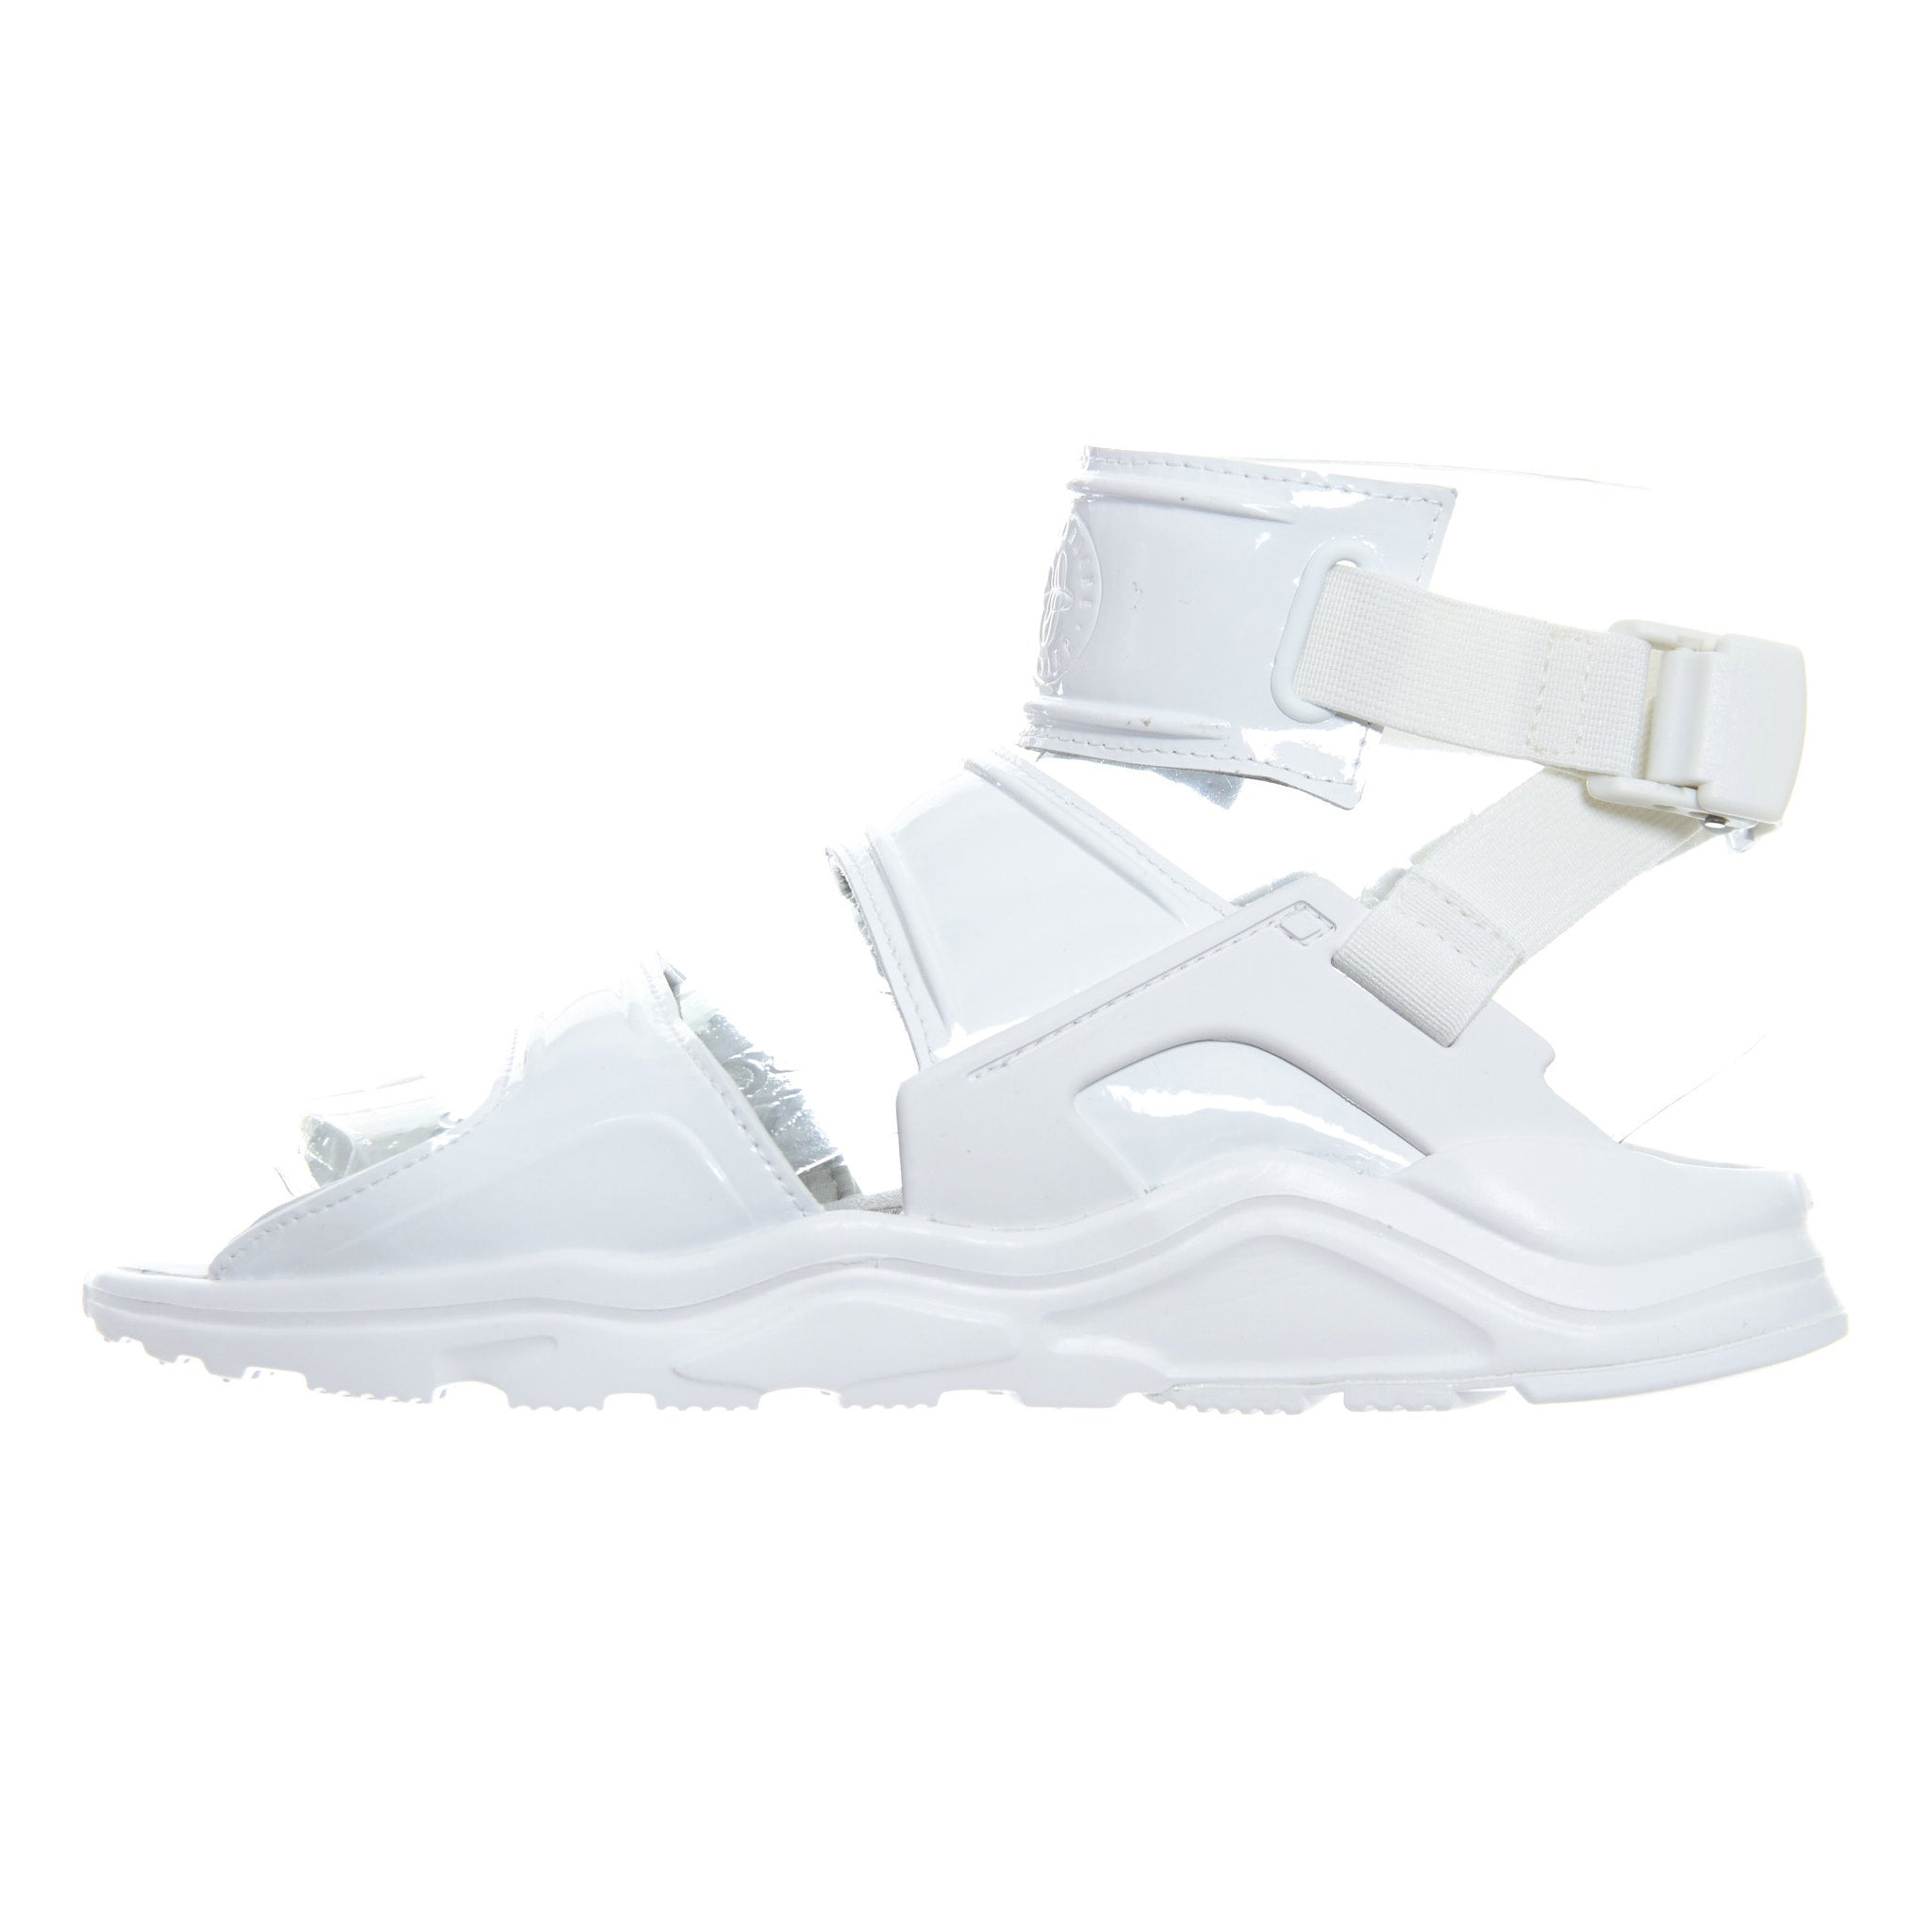 Women's Air Huarache Gladiator QS